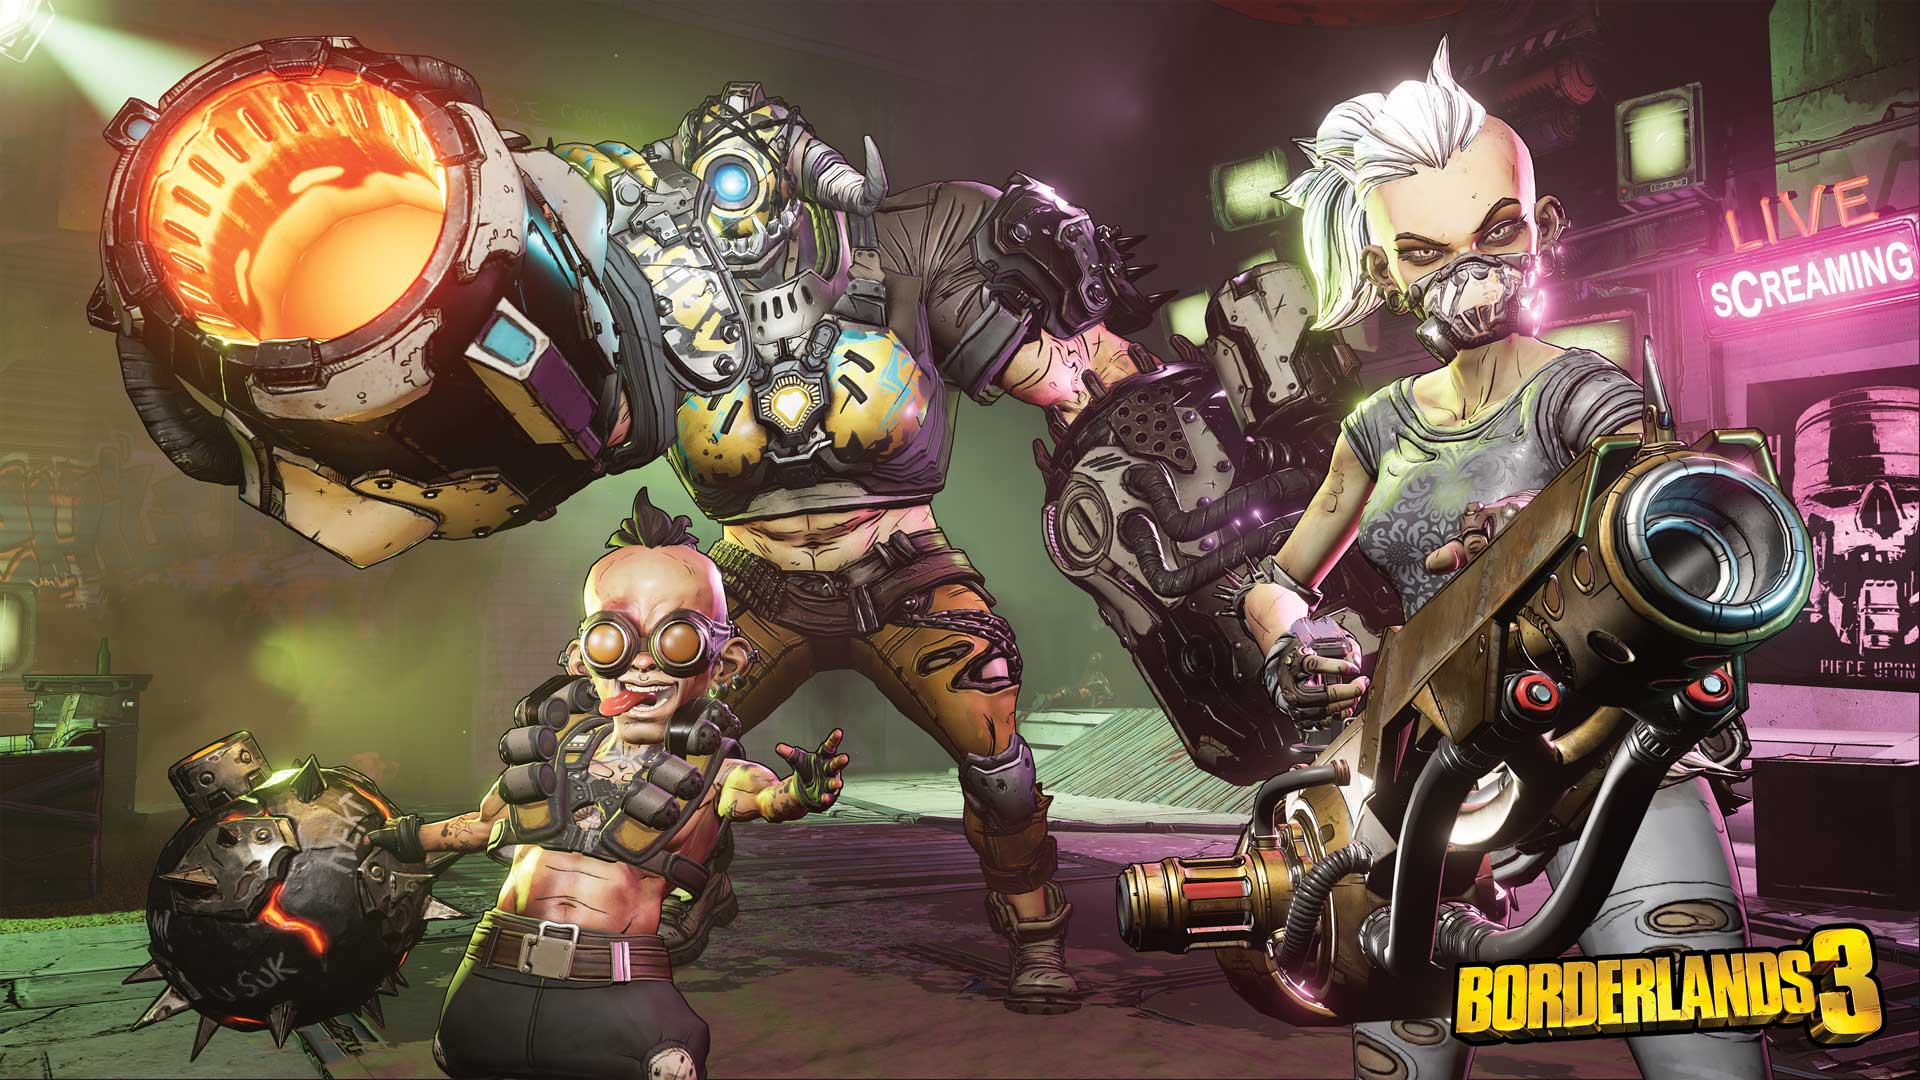 Borderlands 3 boss fight